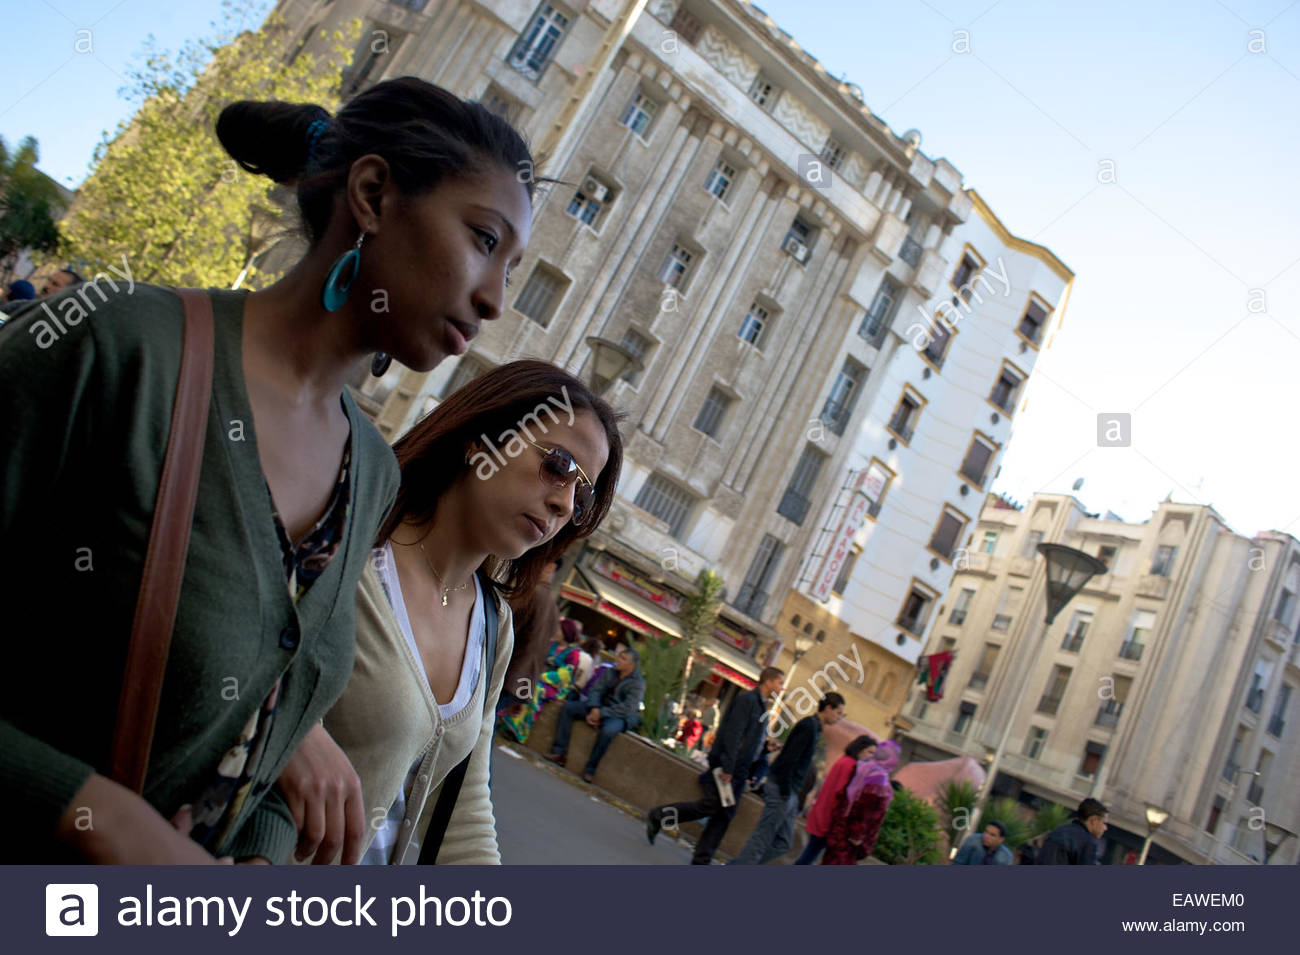 Art Deco architecture reflects French design influence on Casablanca. - Stock Image